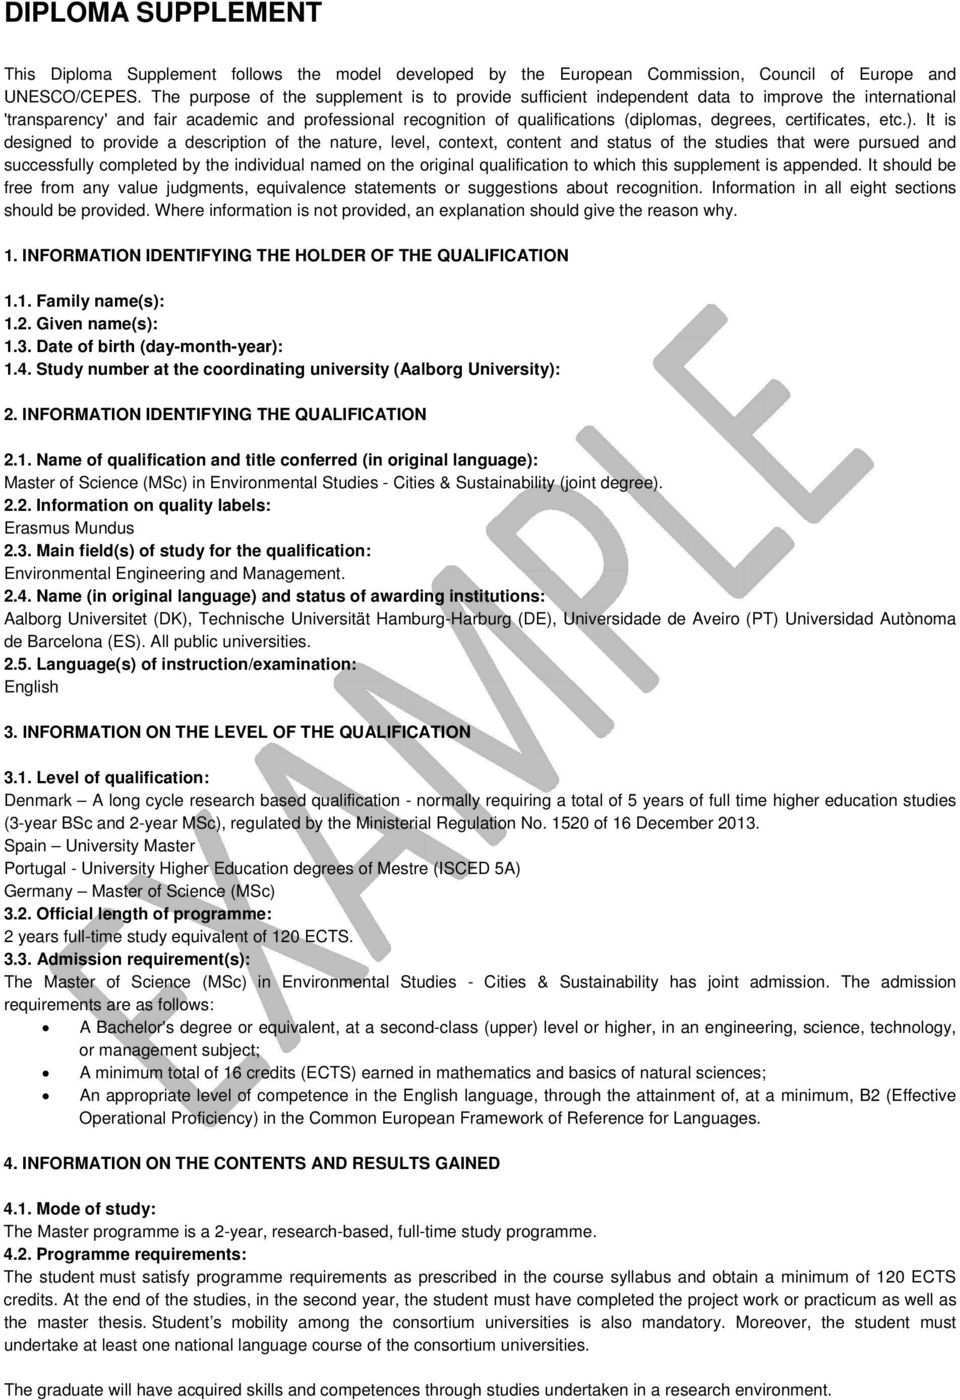 Diploma Supplement 1 Information Identifying The Holder Of The Qualification Pdf Free Download